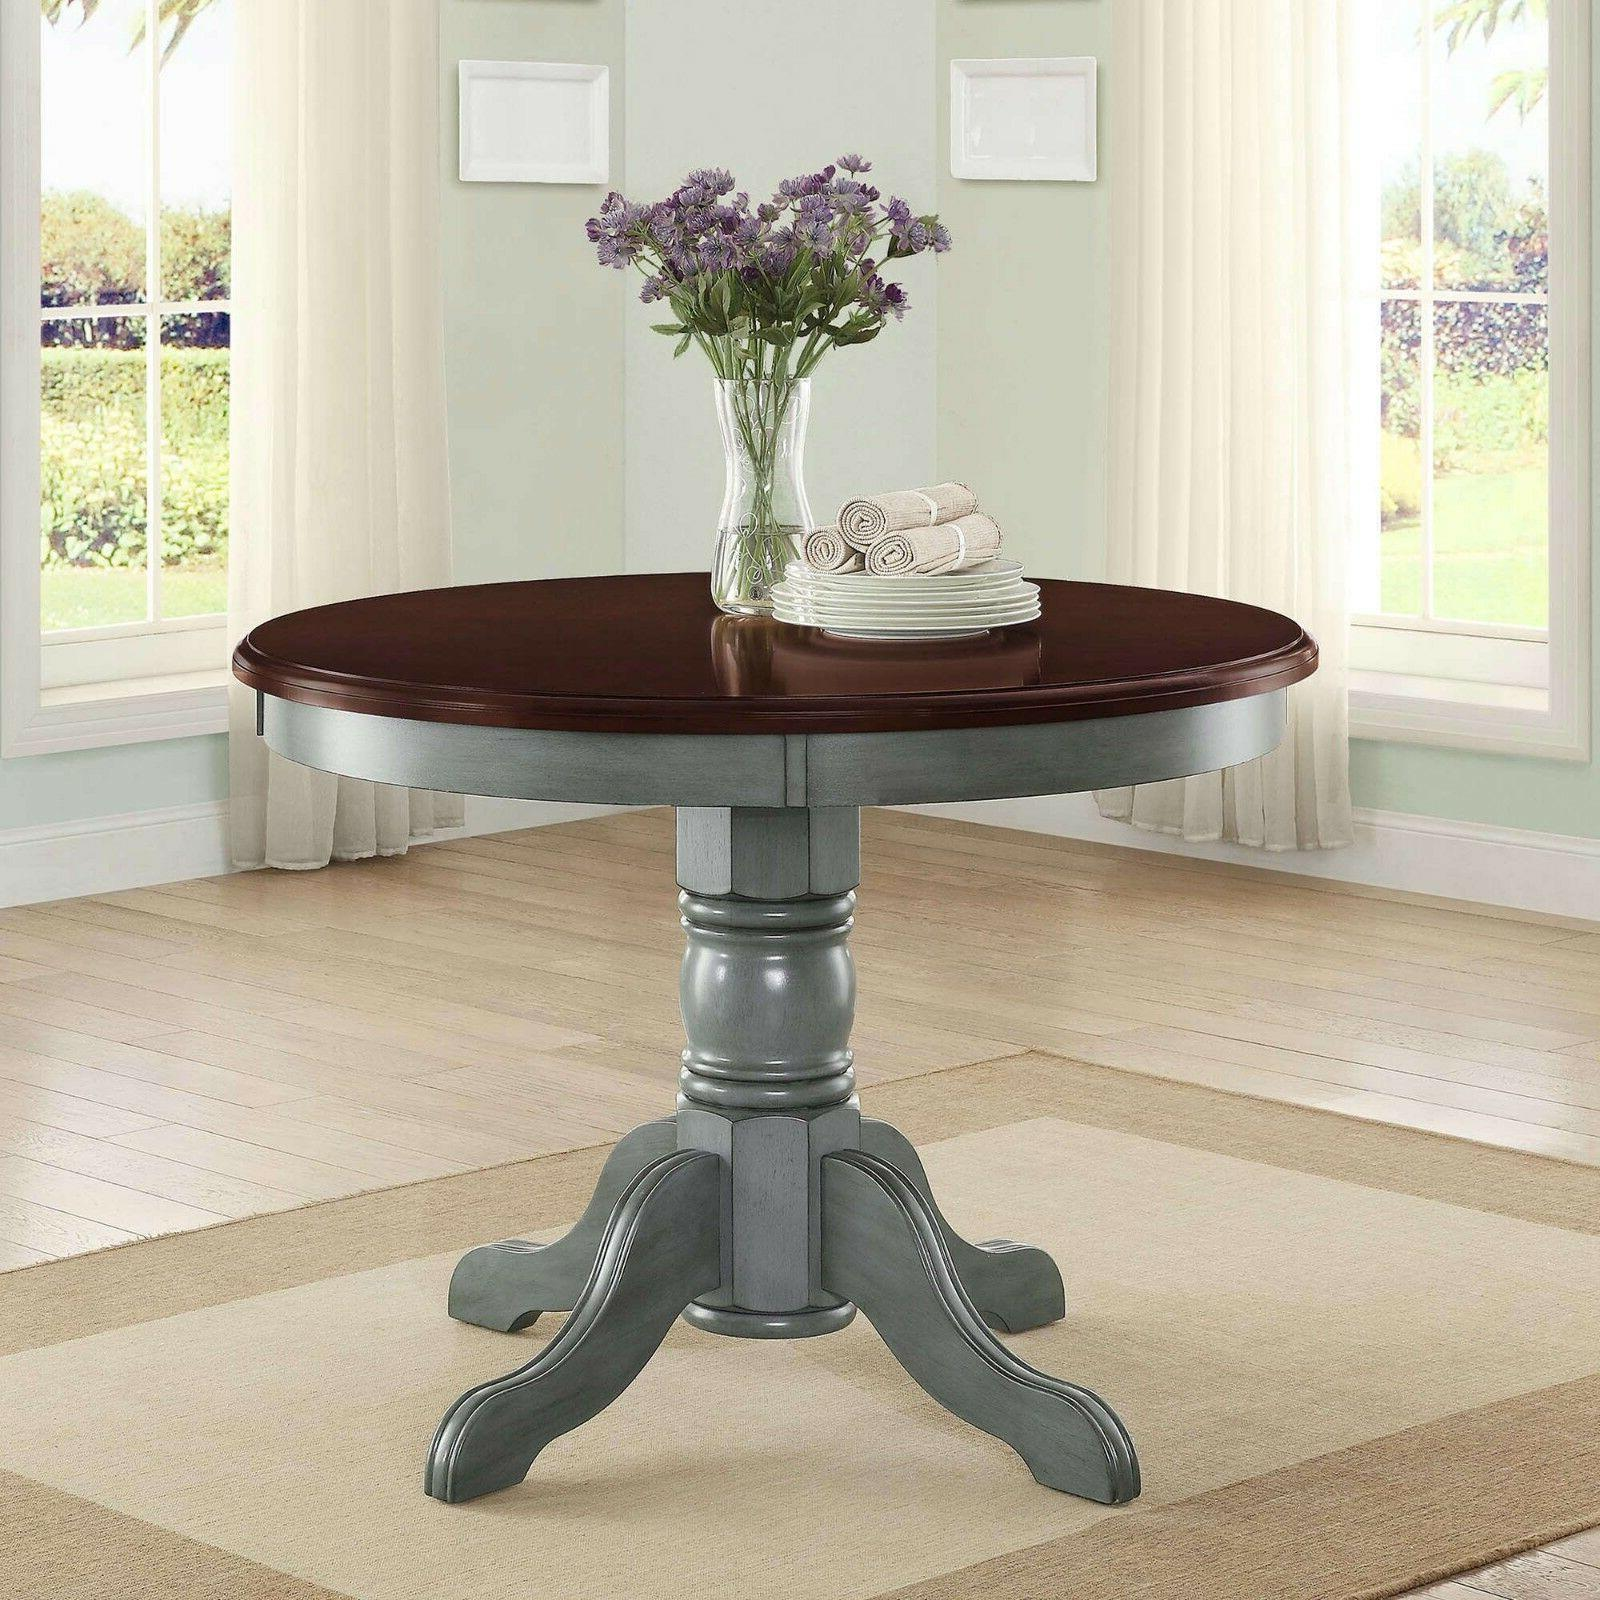 5 Piece Set Rustic Round Table Chairs Teal Mocha